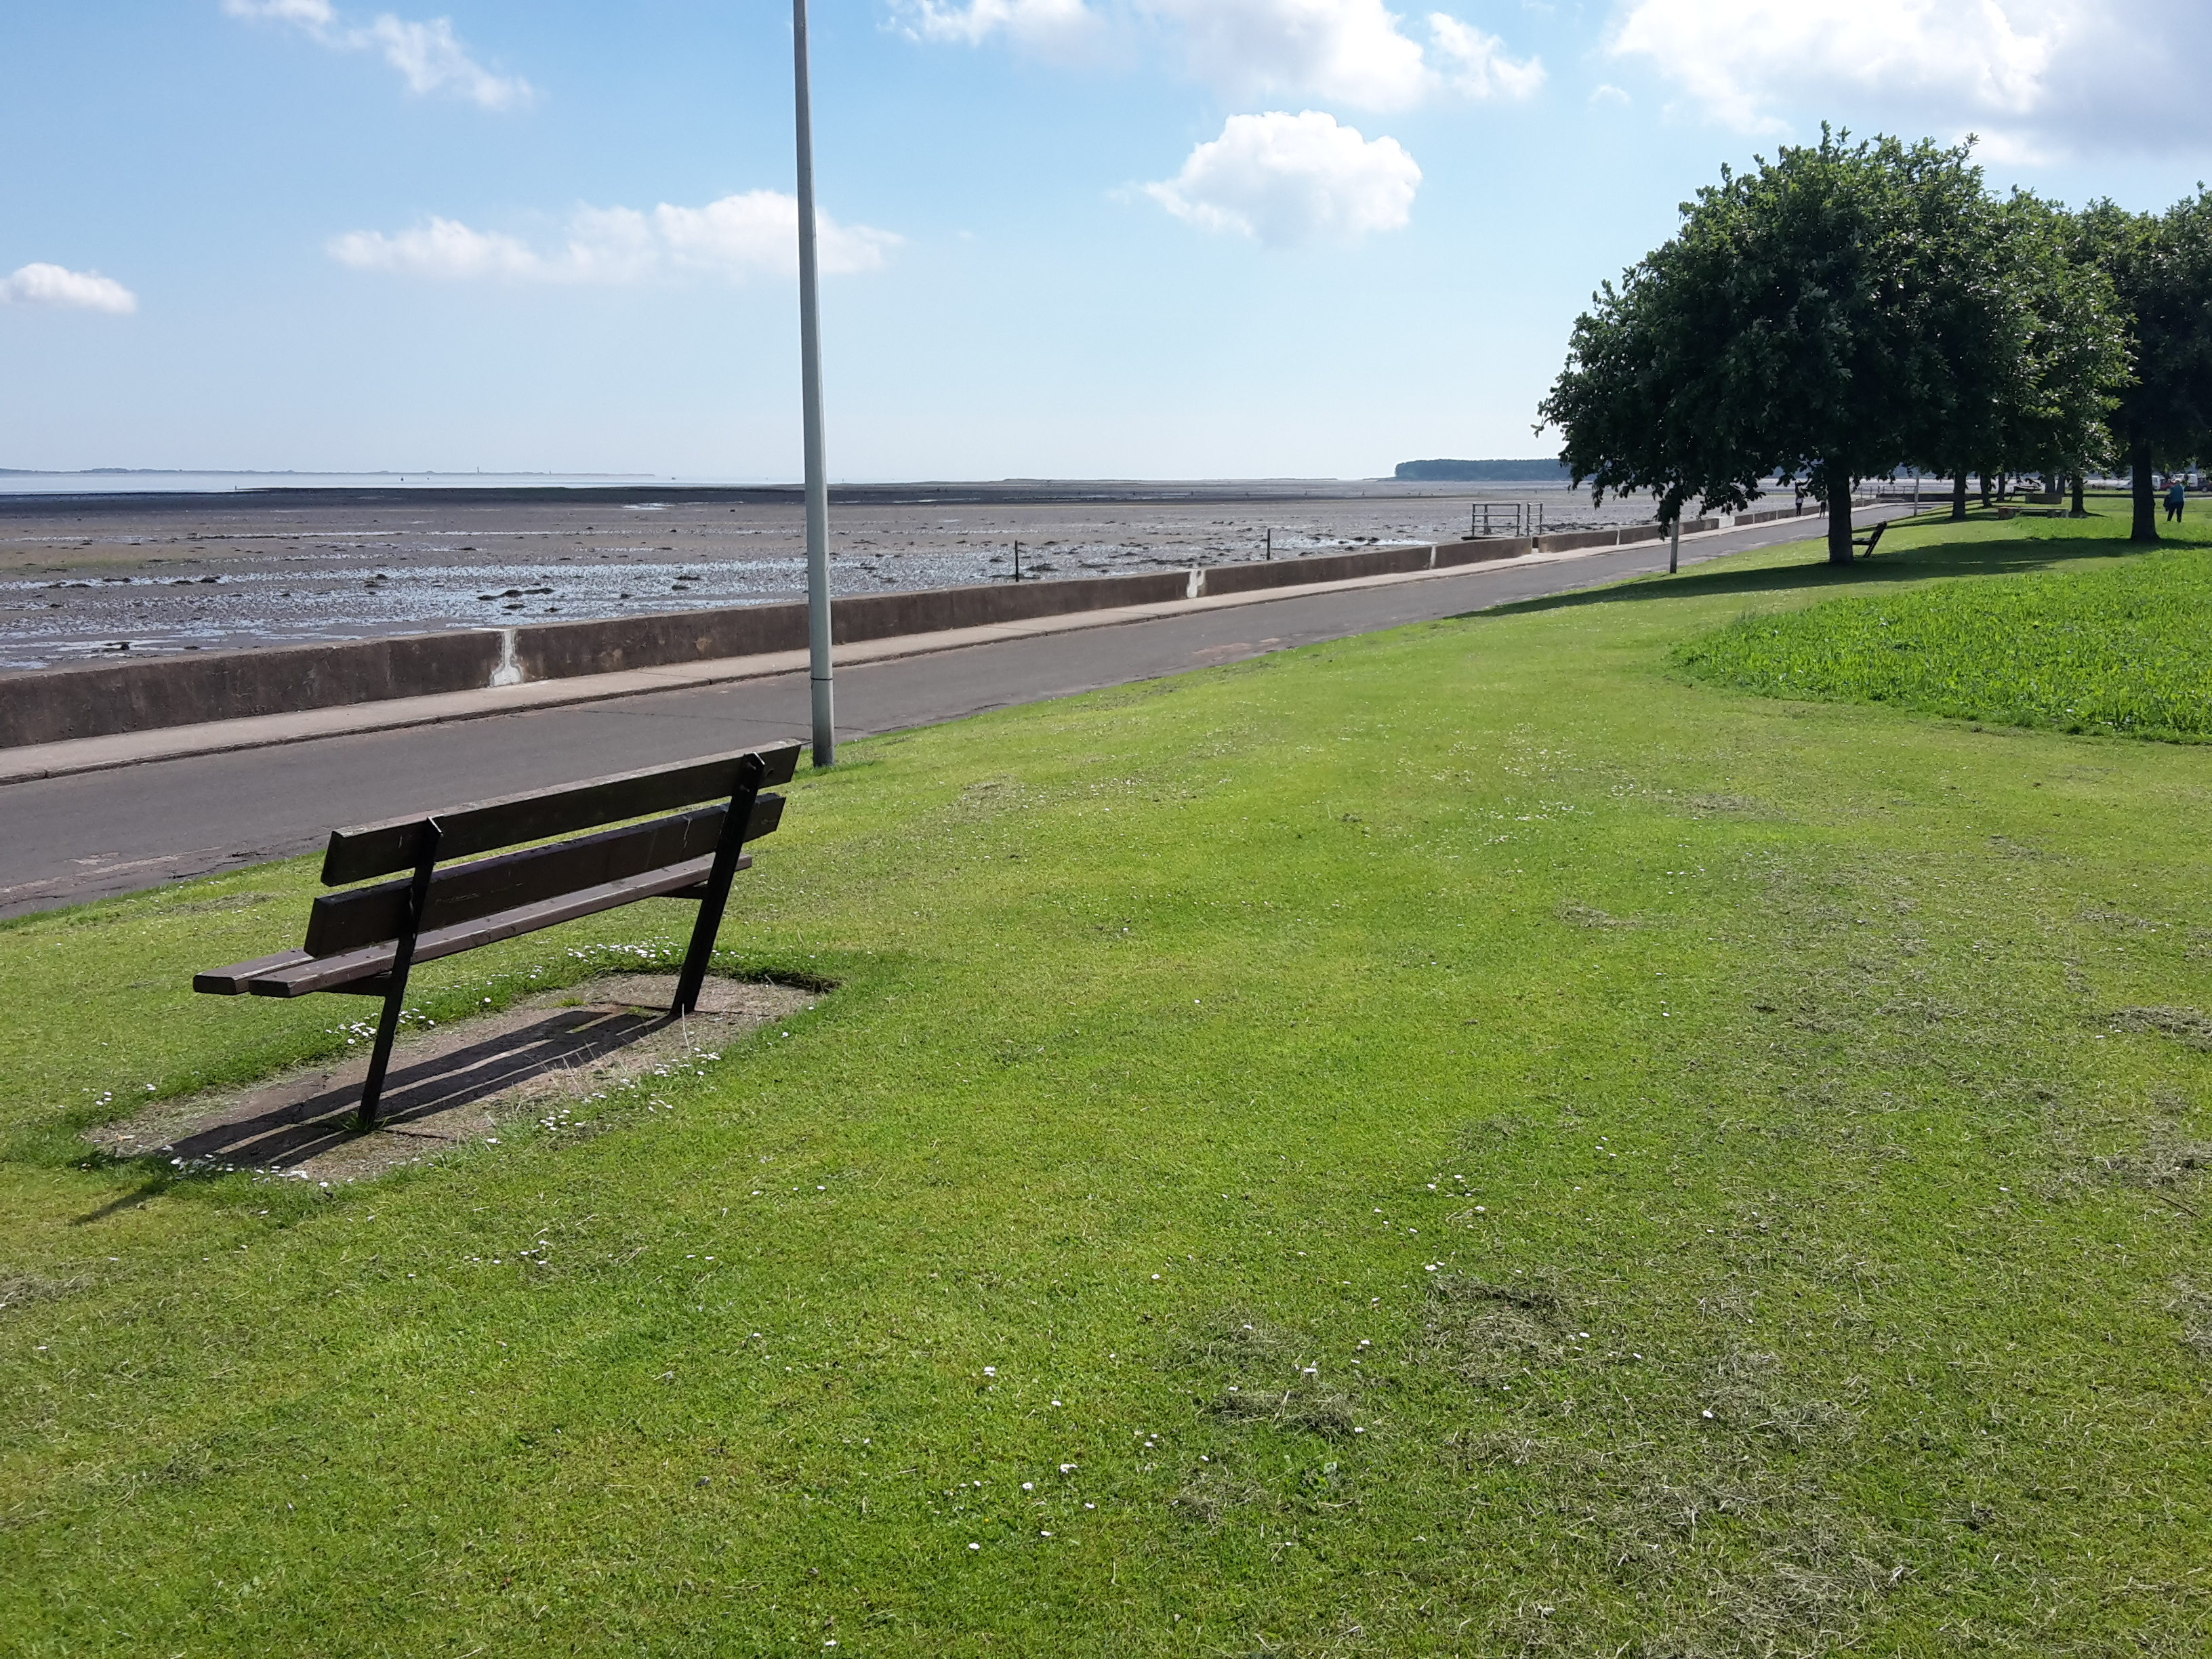 A bench looking out over the Tay to Dundee and Angus coast